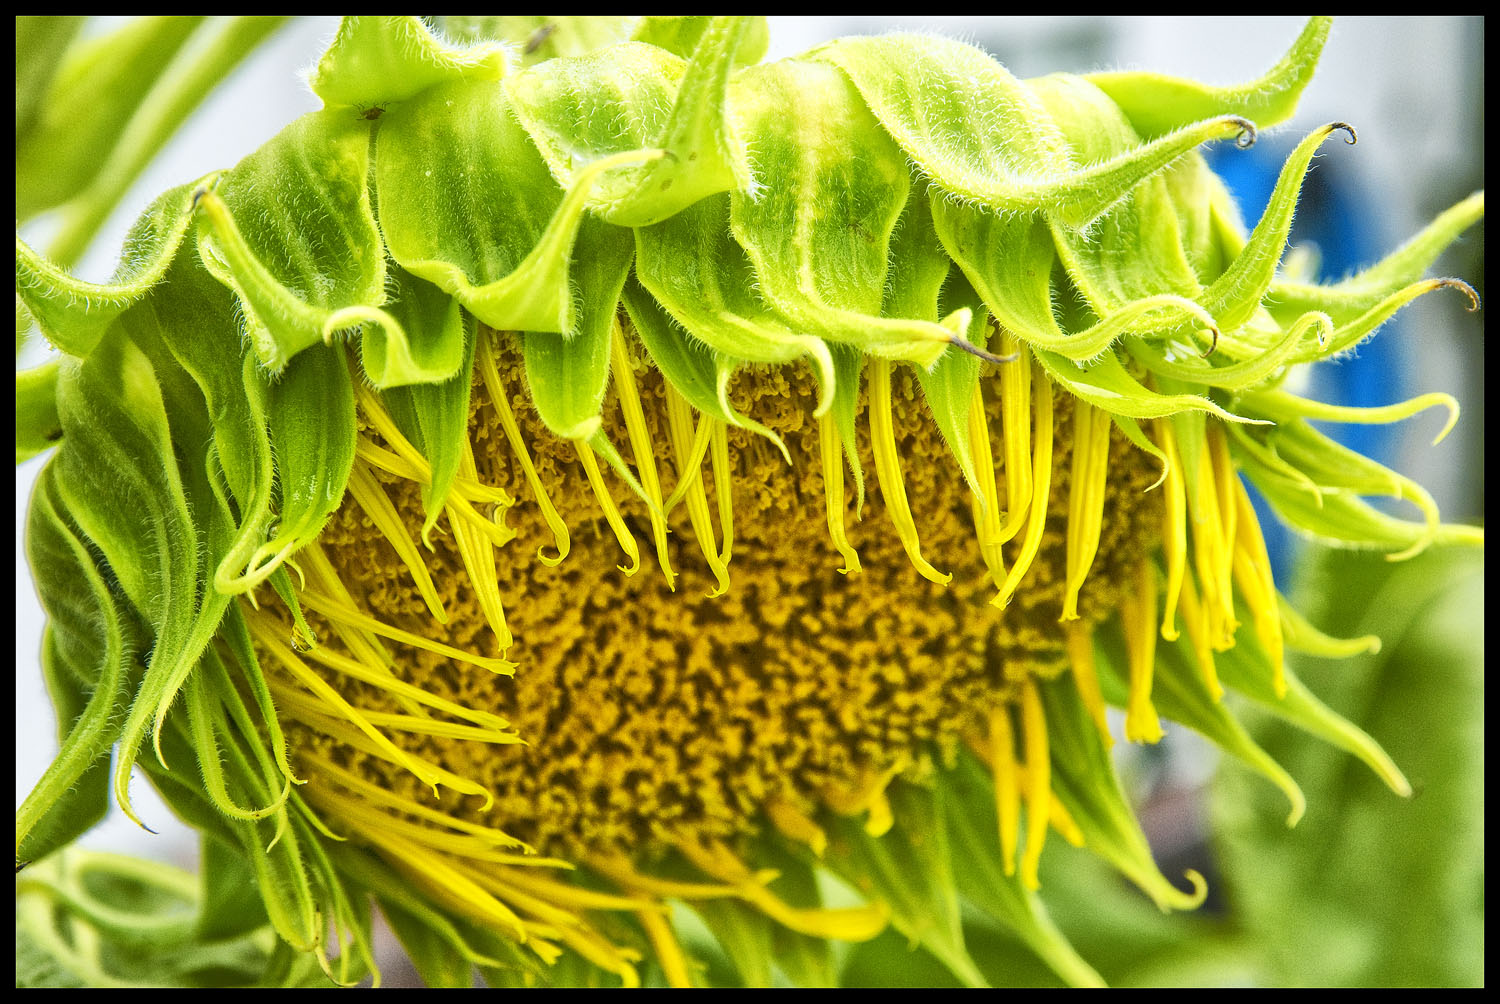 Giant Russian Sunflower